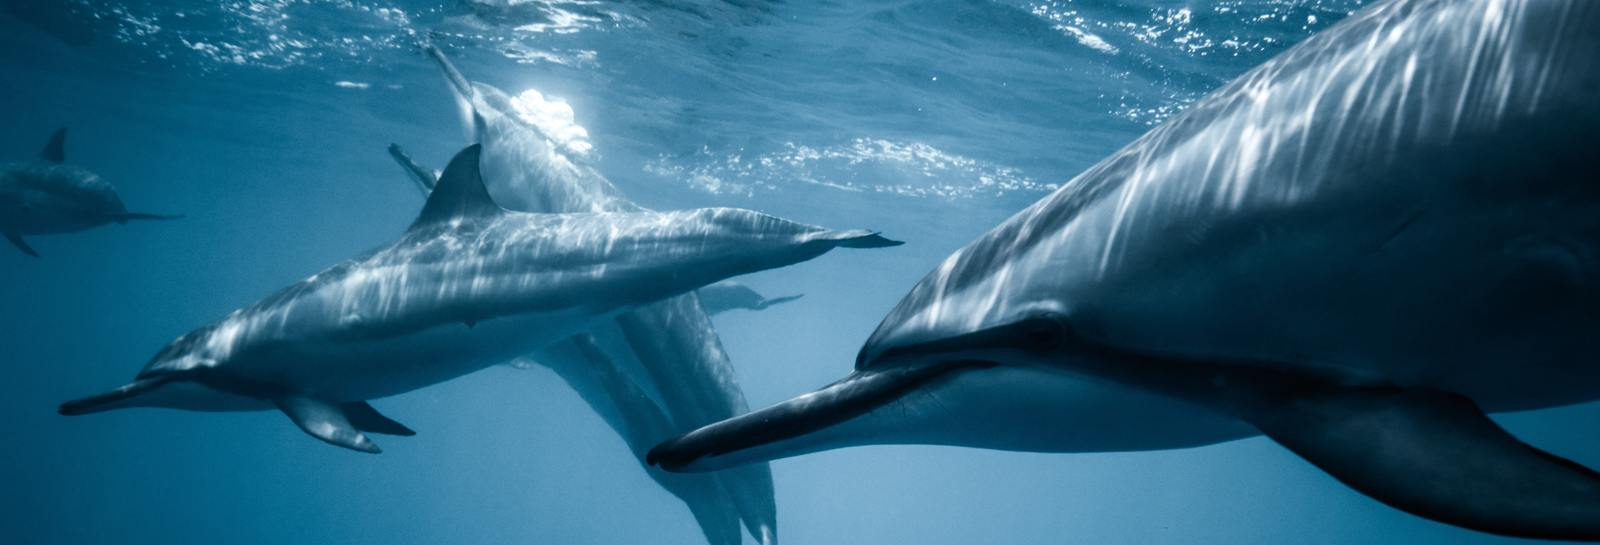 DRH_DestinationBucketList_dolphins4